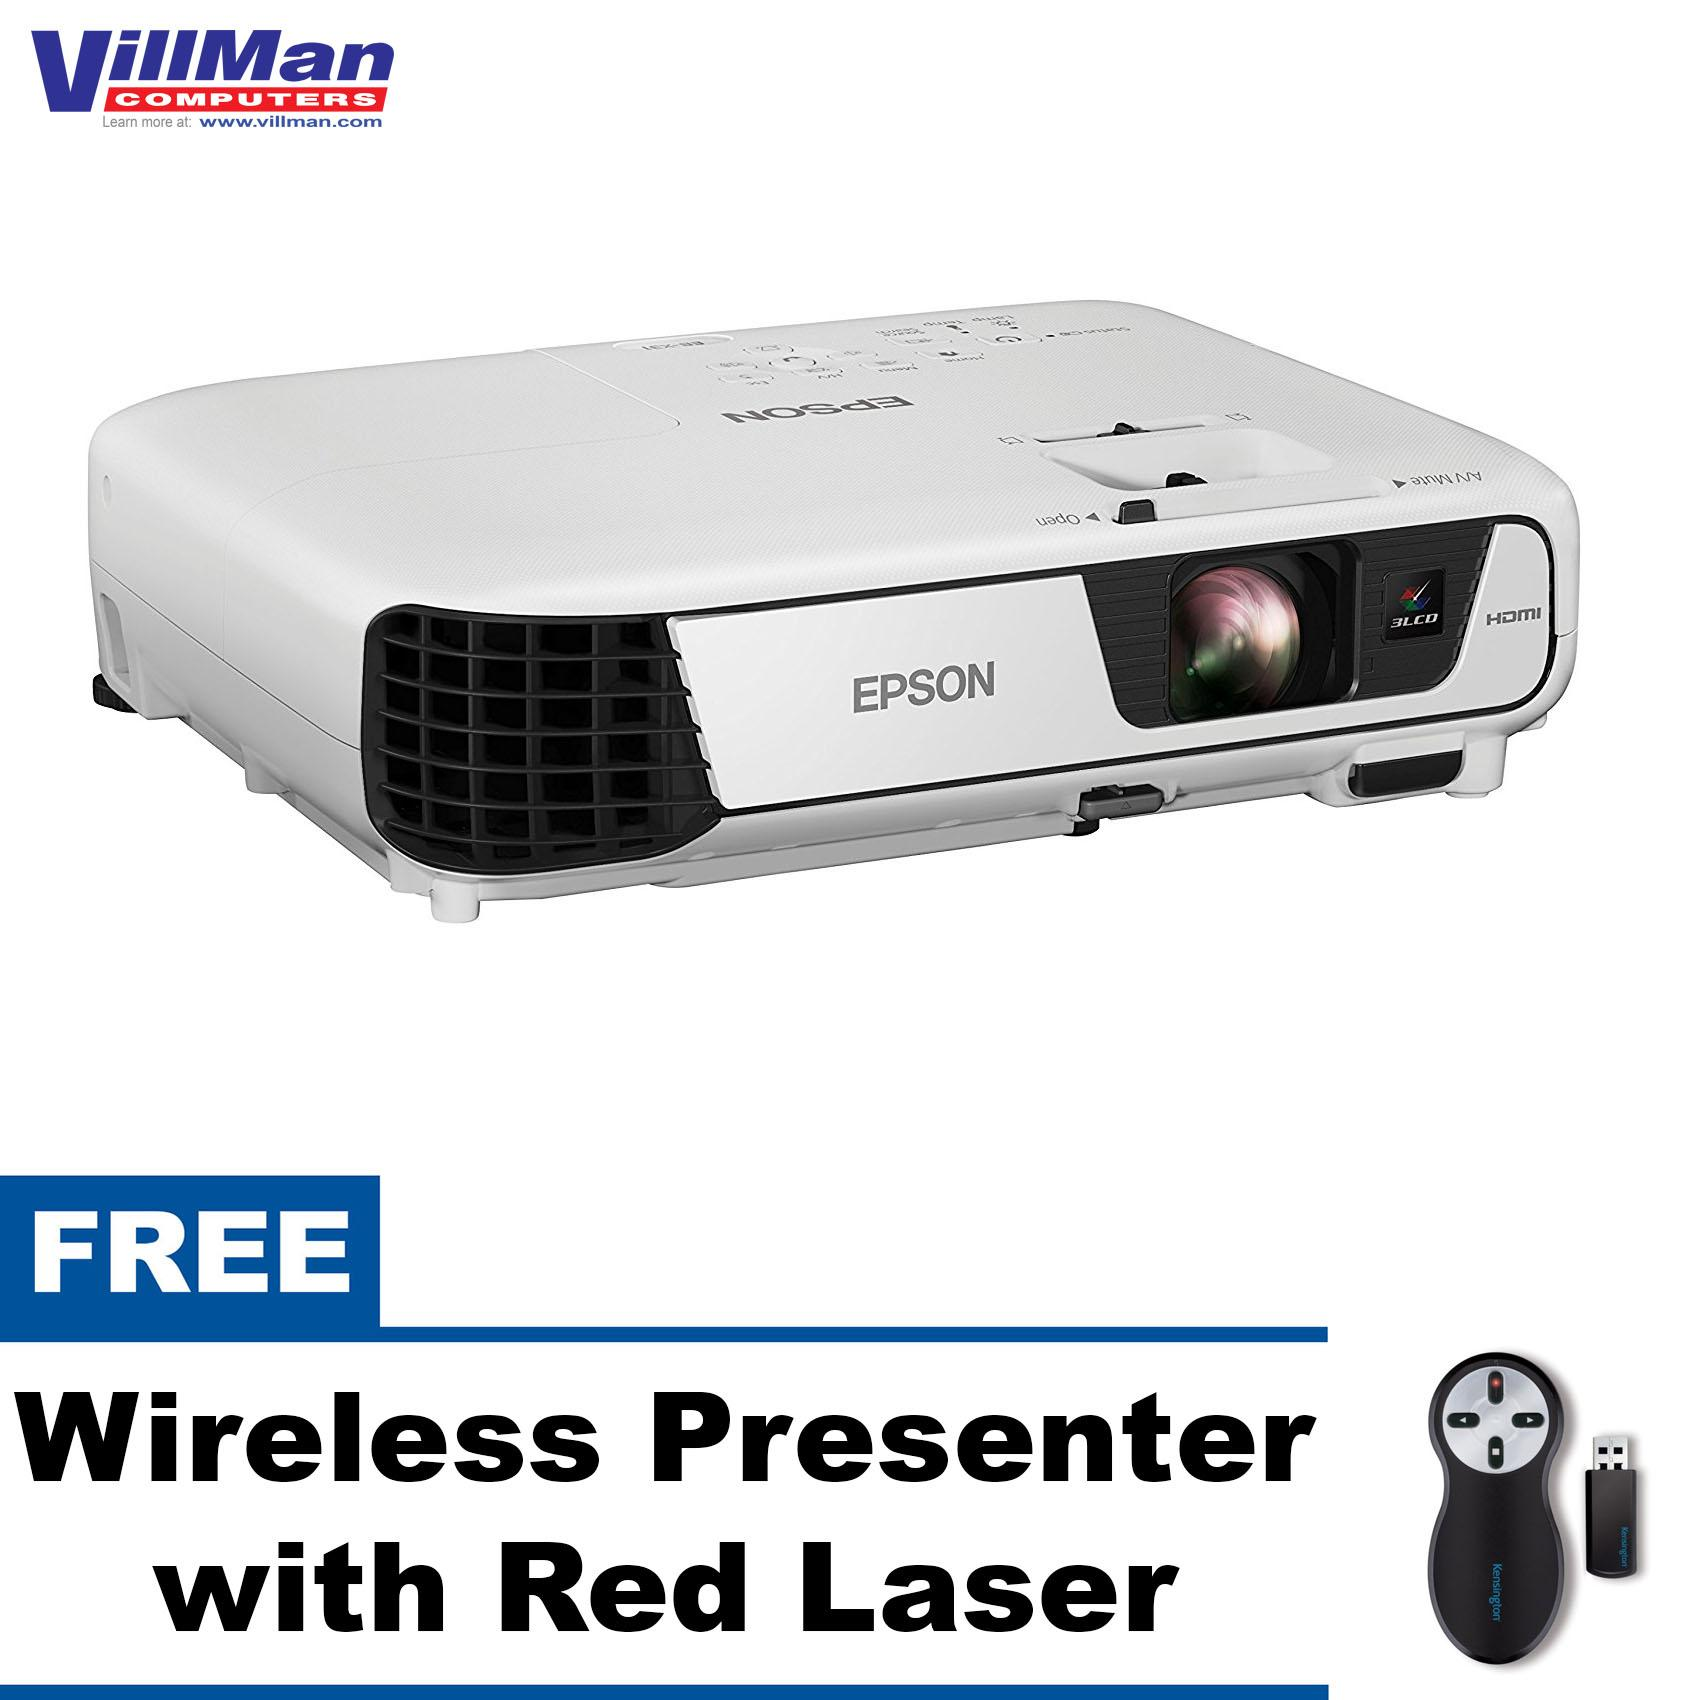 Epson Philippines Projector For Sale Prices Reviews Lazada Eh Tw570 Home Theatre Eb X31 3200 Ansi Lumens With Free Wireless Presenter Red Laser